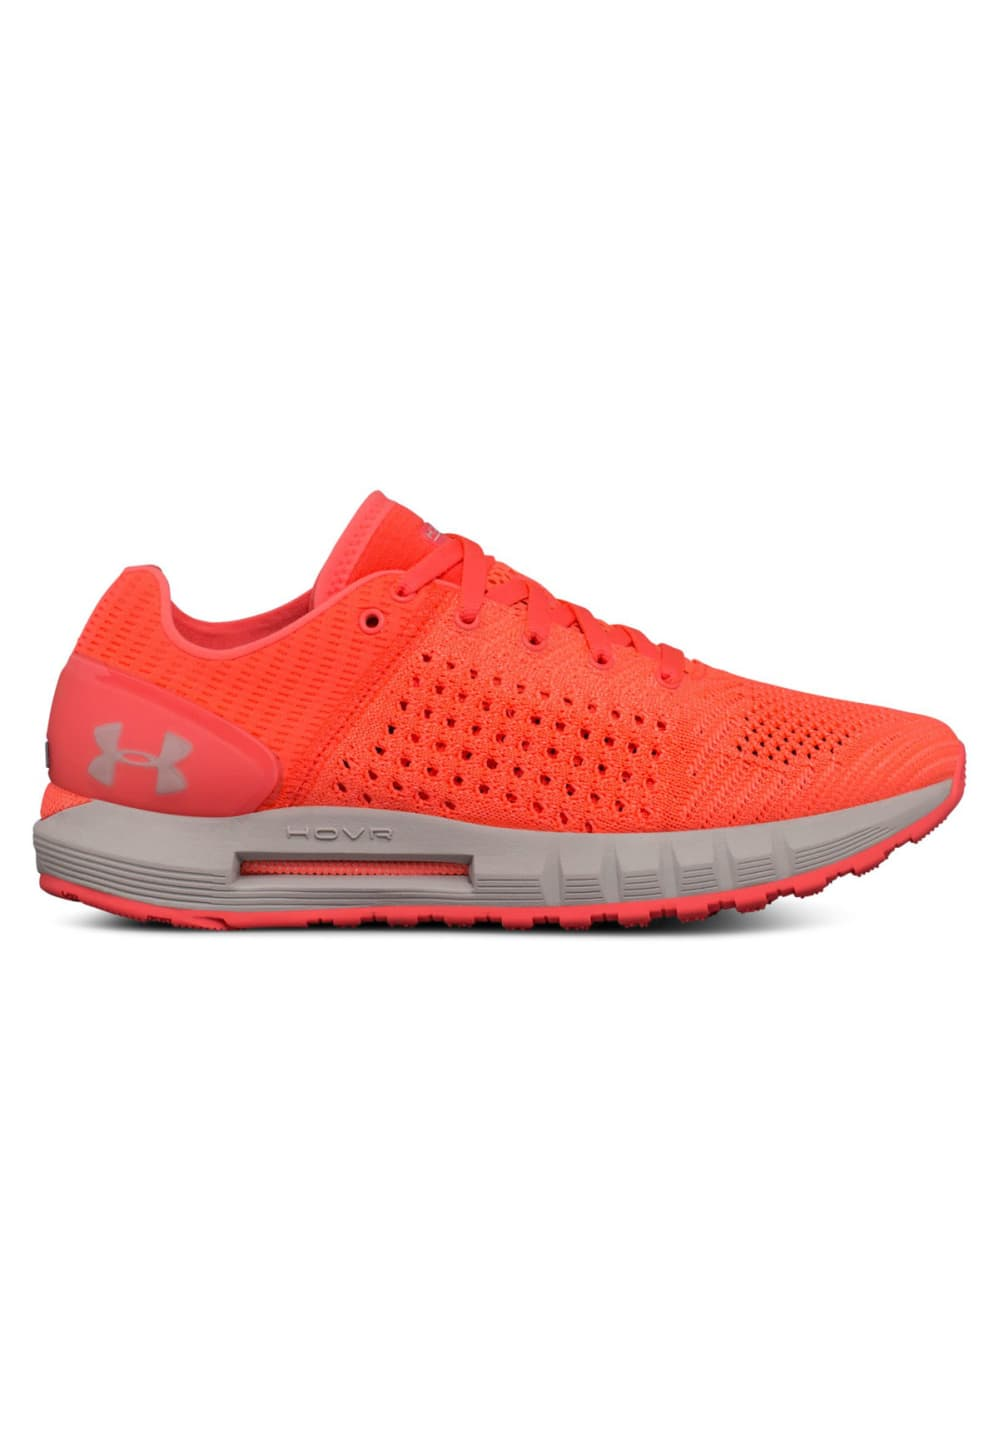 sneakers for cheap 6a3d7 f948c Under Armour Hovr Sonic Nc - Running shoes for Women - Orange